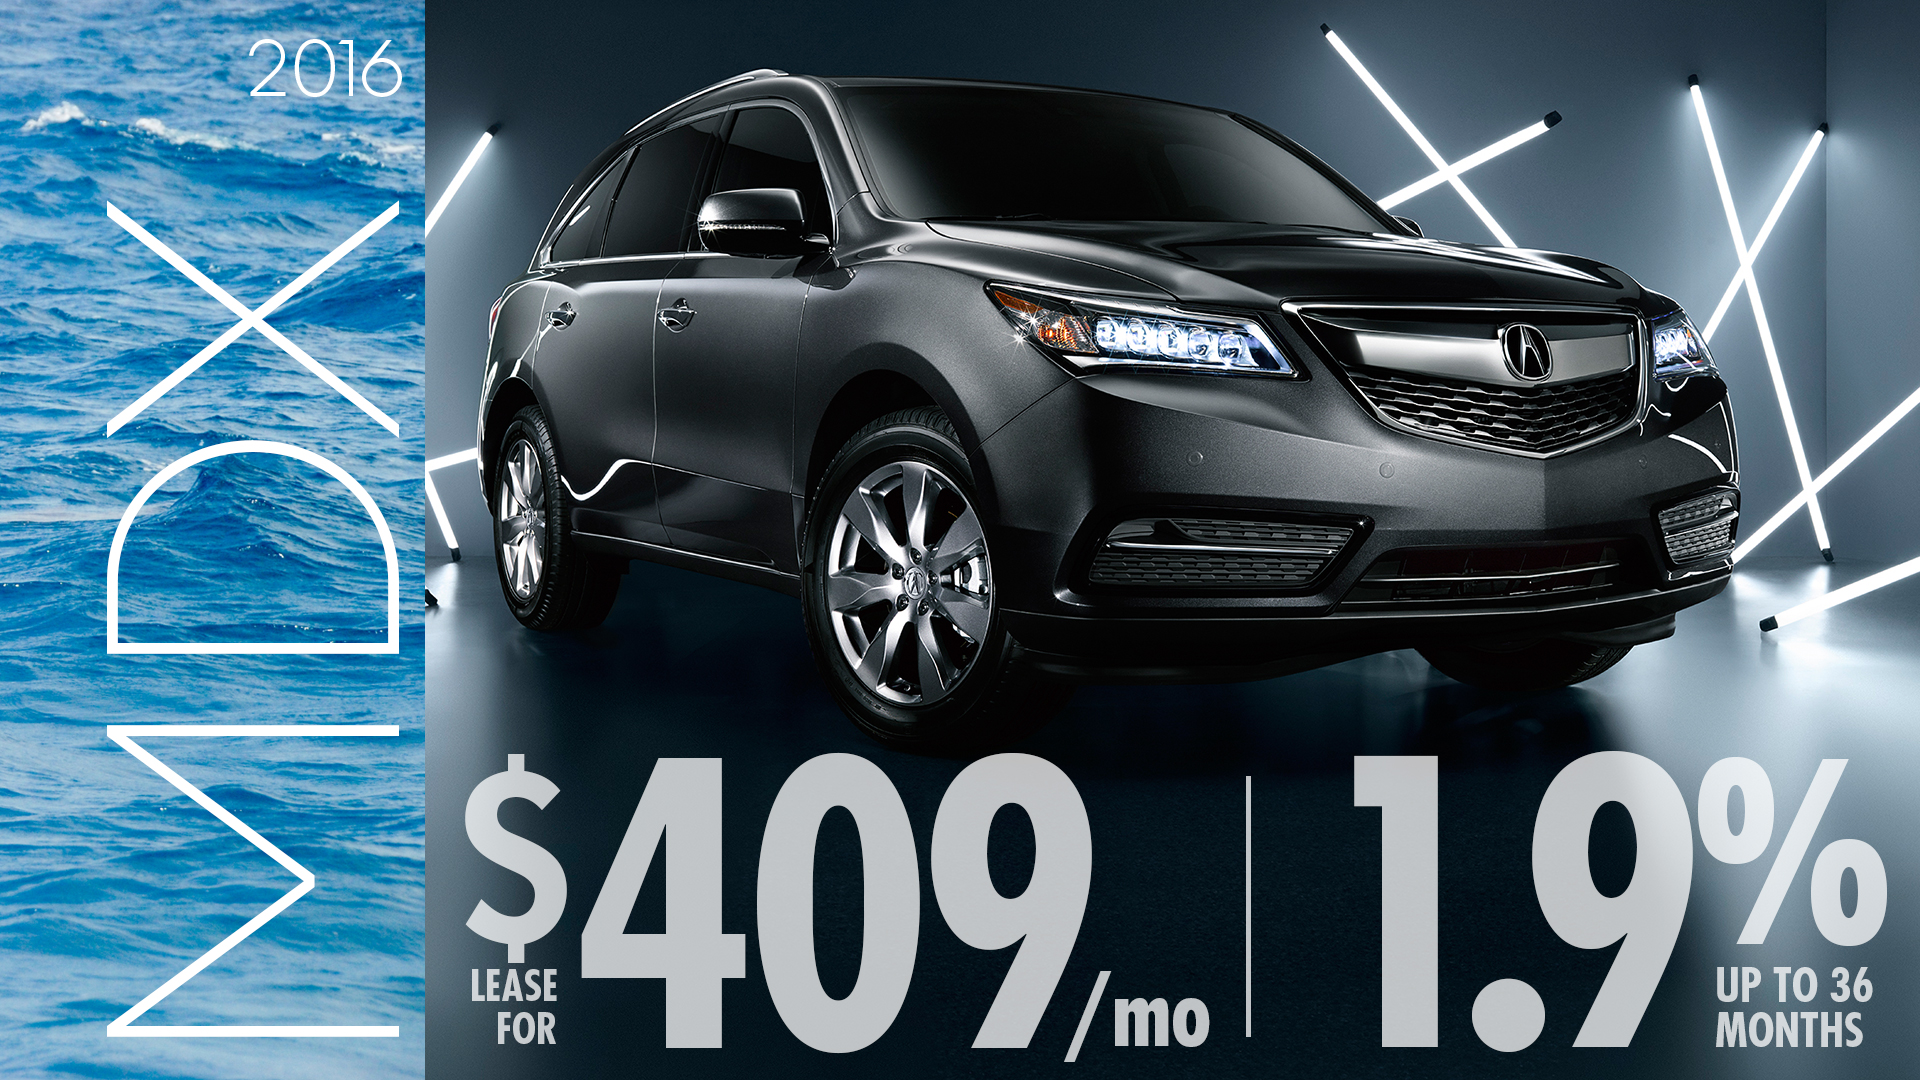 MDX Special Offer